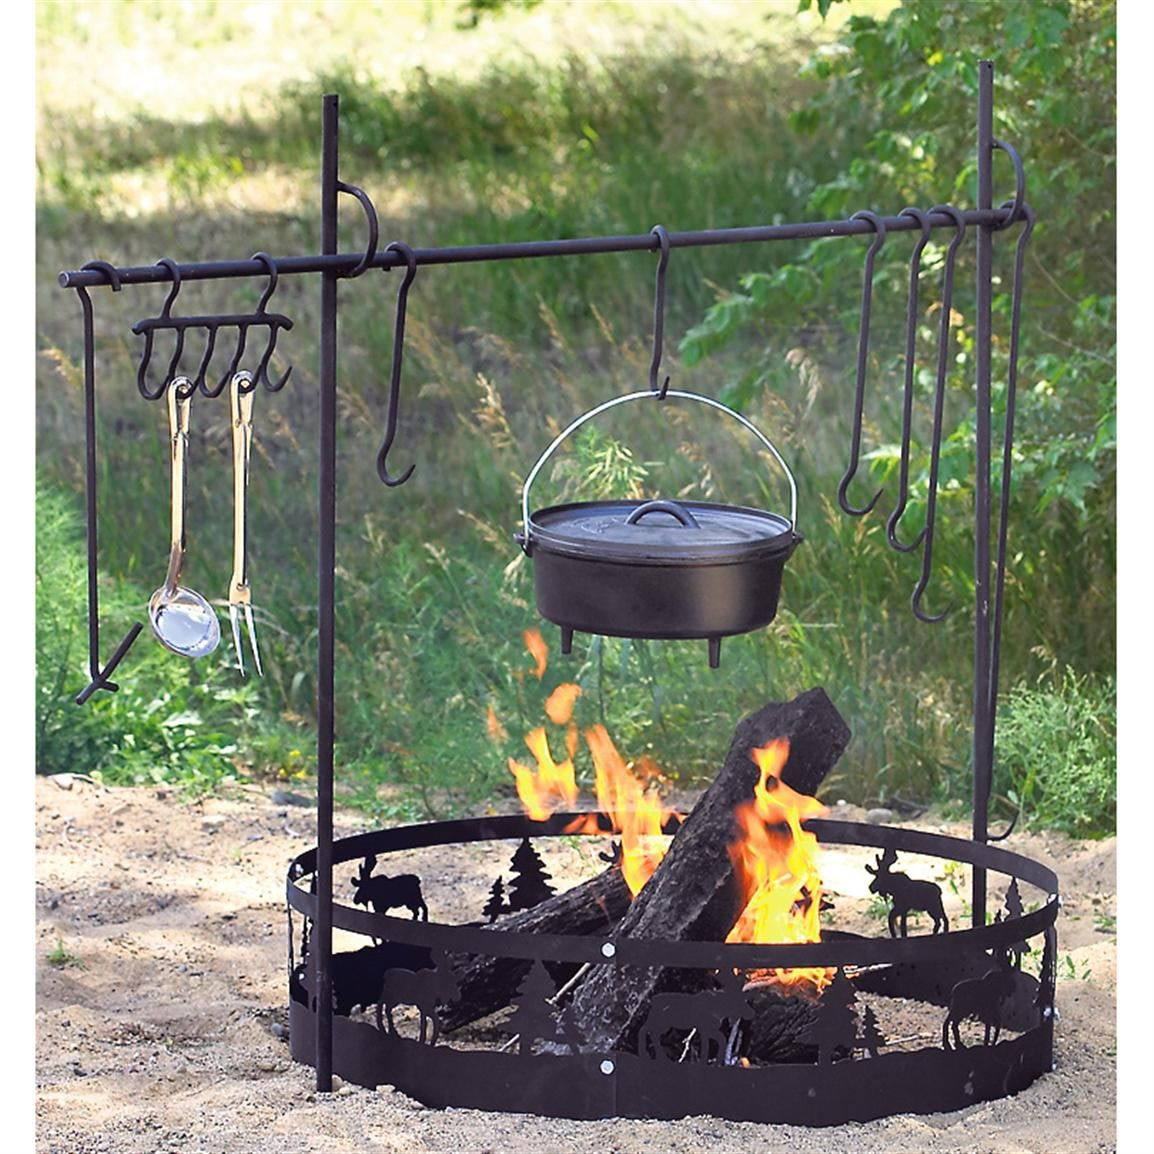 Fire Pit Cooking Accessories Fire Pit Cooking Campfire Cooking